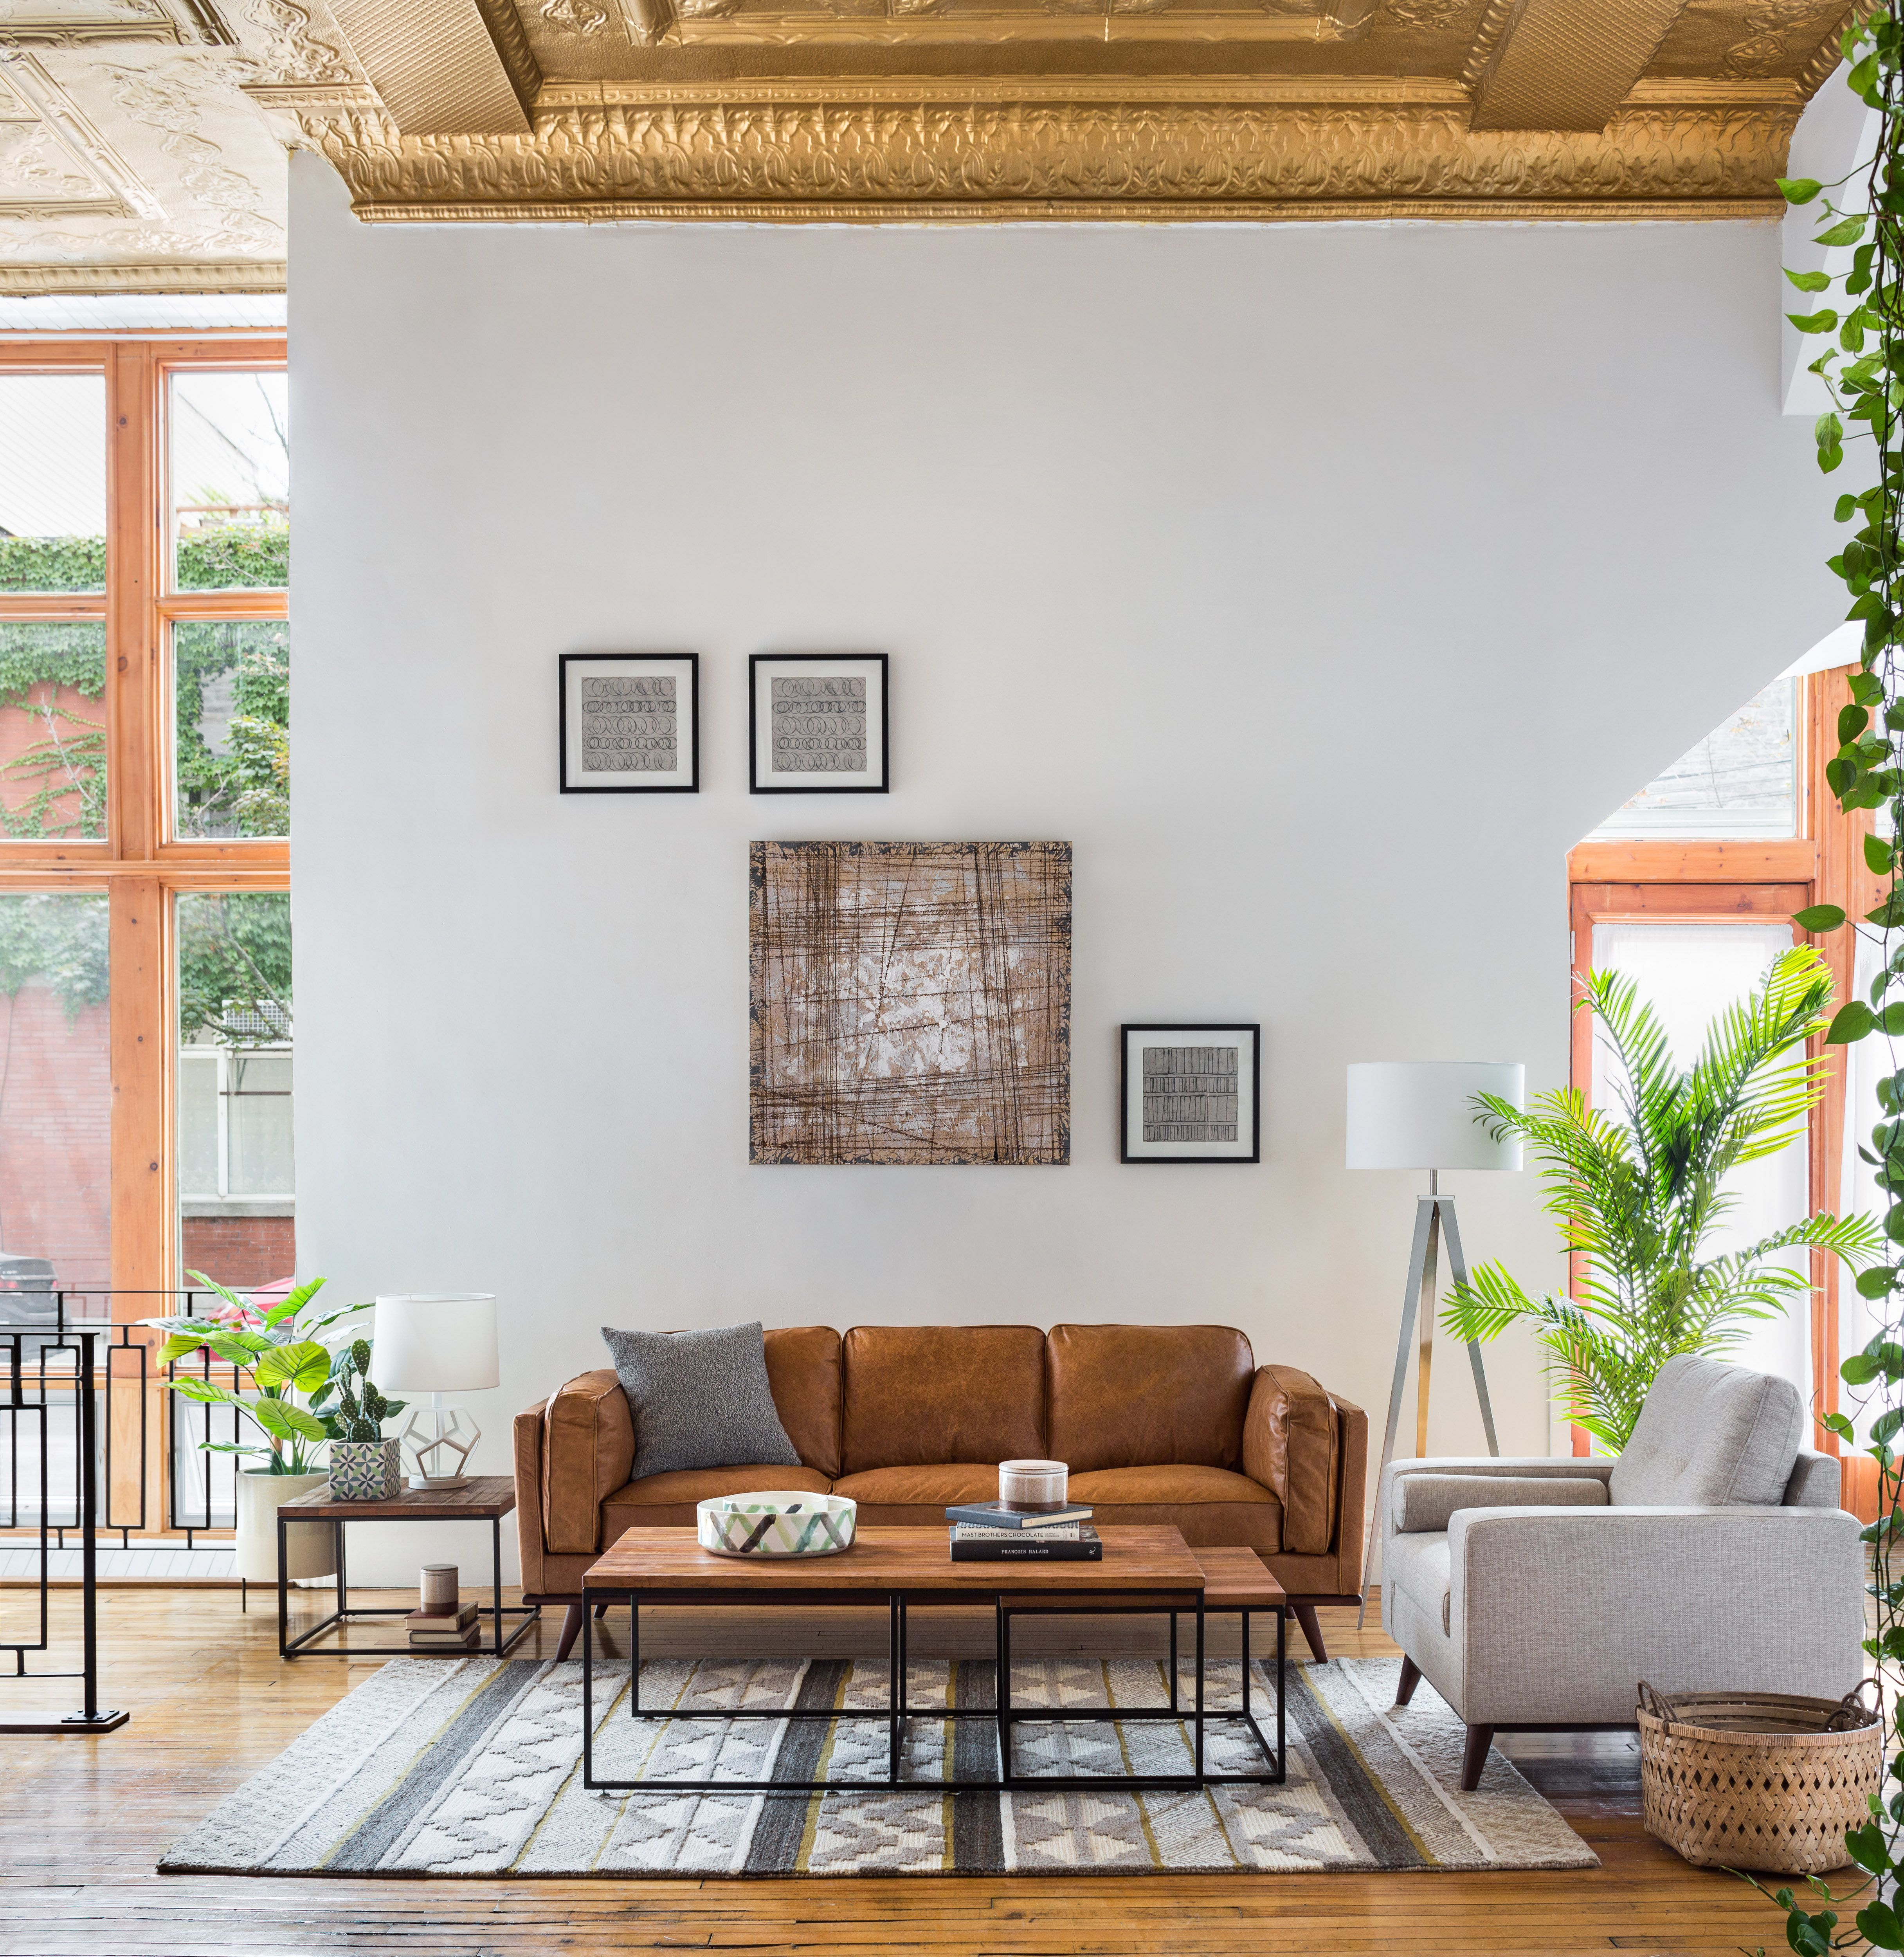 Pin By Aja Johnson On Interiors In 2019